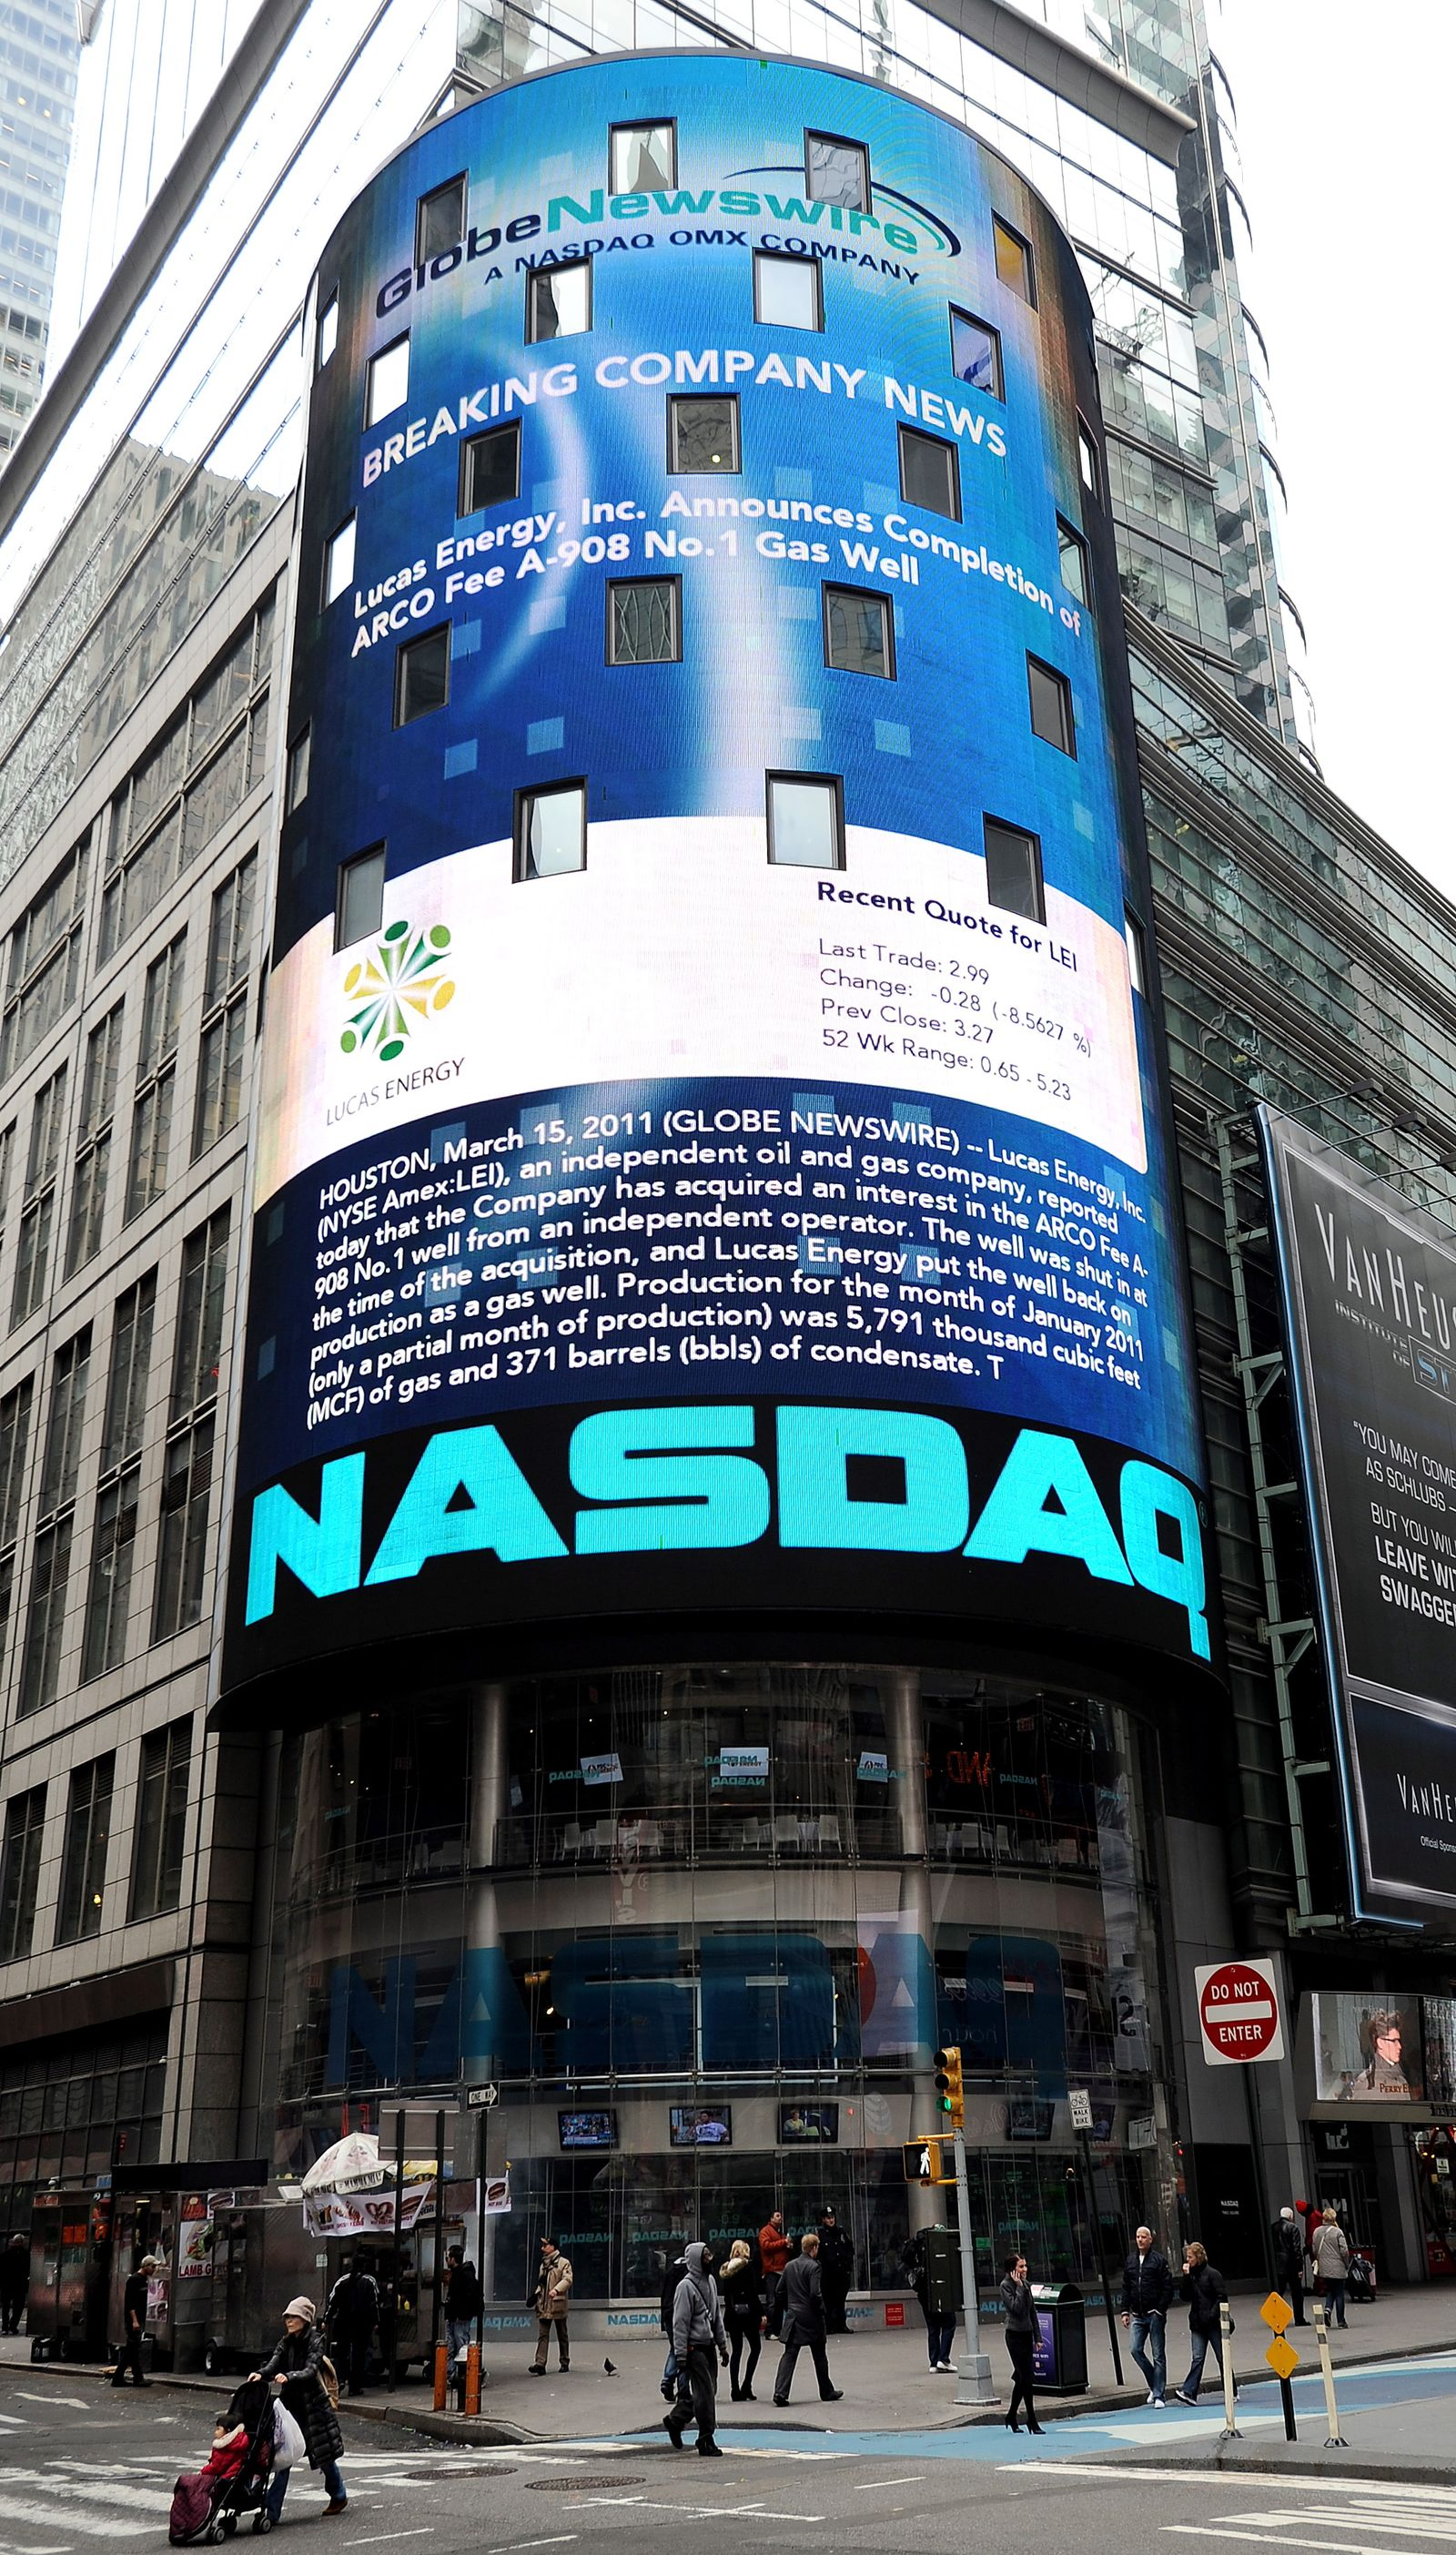 Nasdaq considers bid for NYSE Euroenext